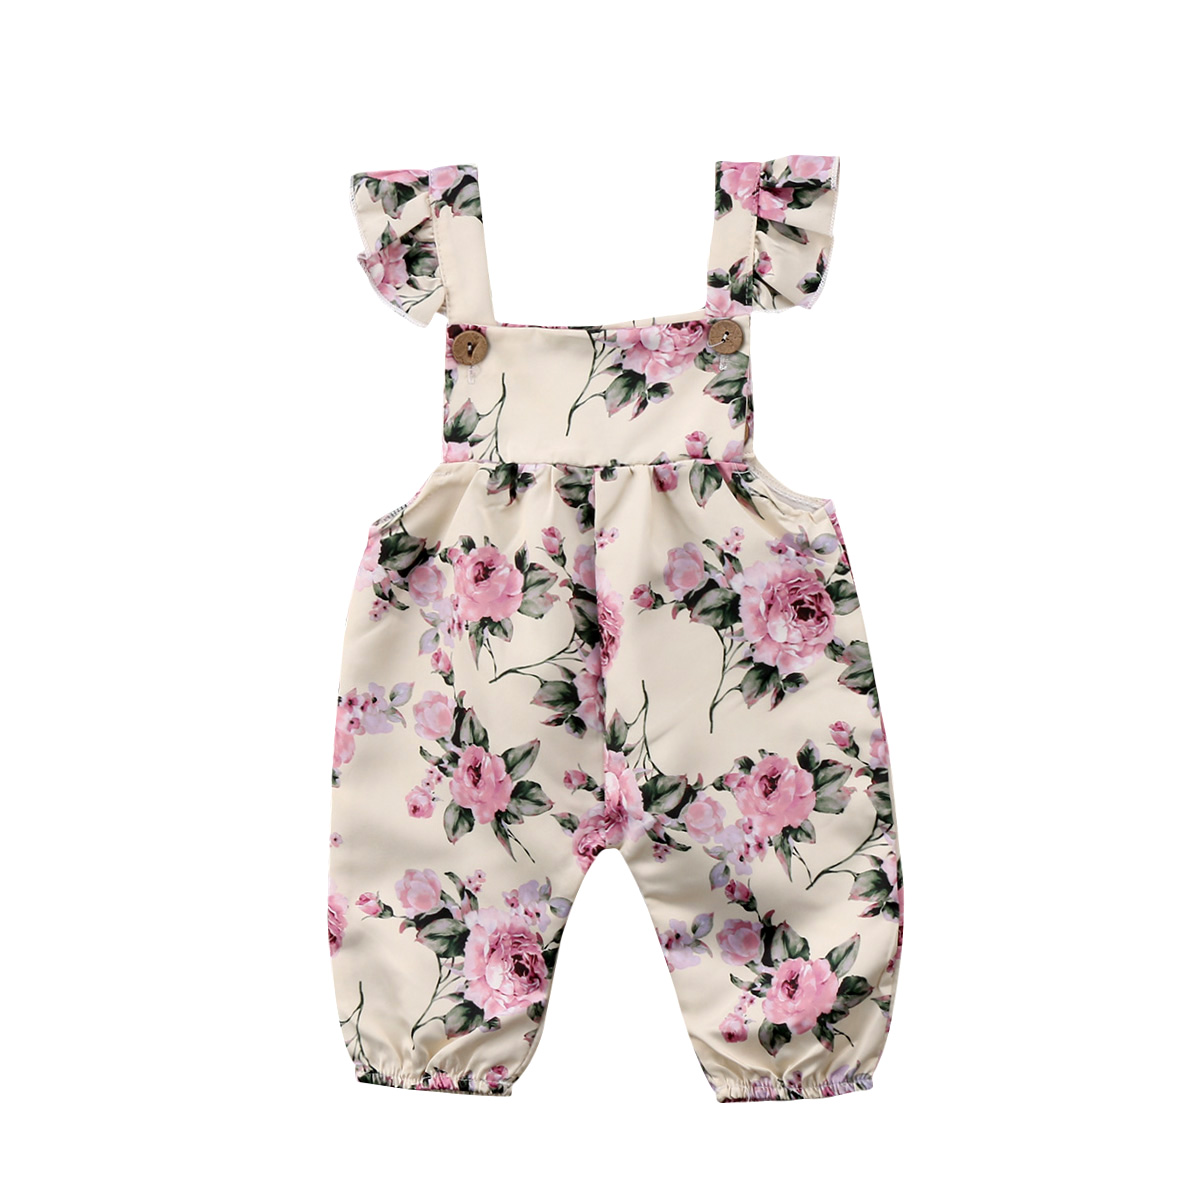 Pudcoco Newborn Infant Baby Girls Clothes Summer Strap Flower Romper Overall Jumpsuit Outfit Baby Girls Clothing 0-24M